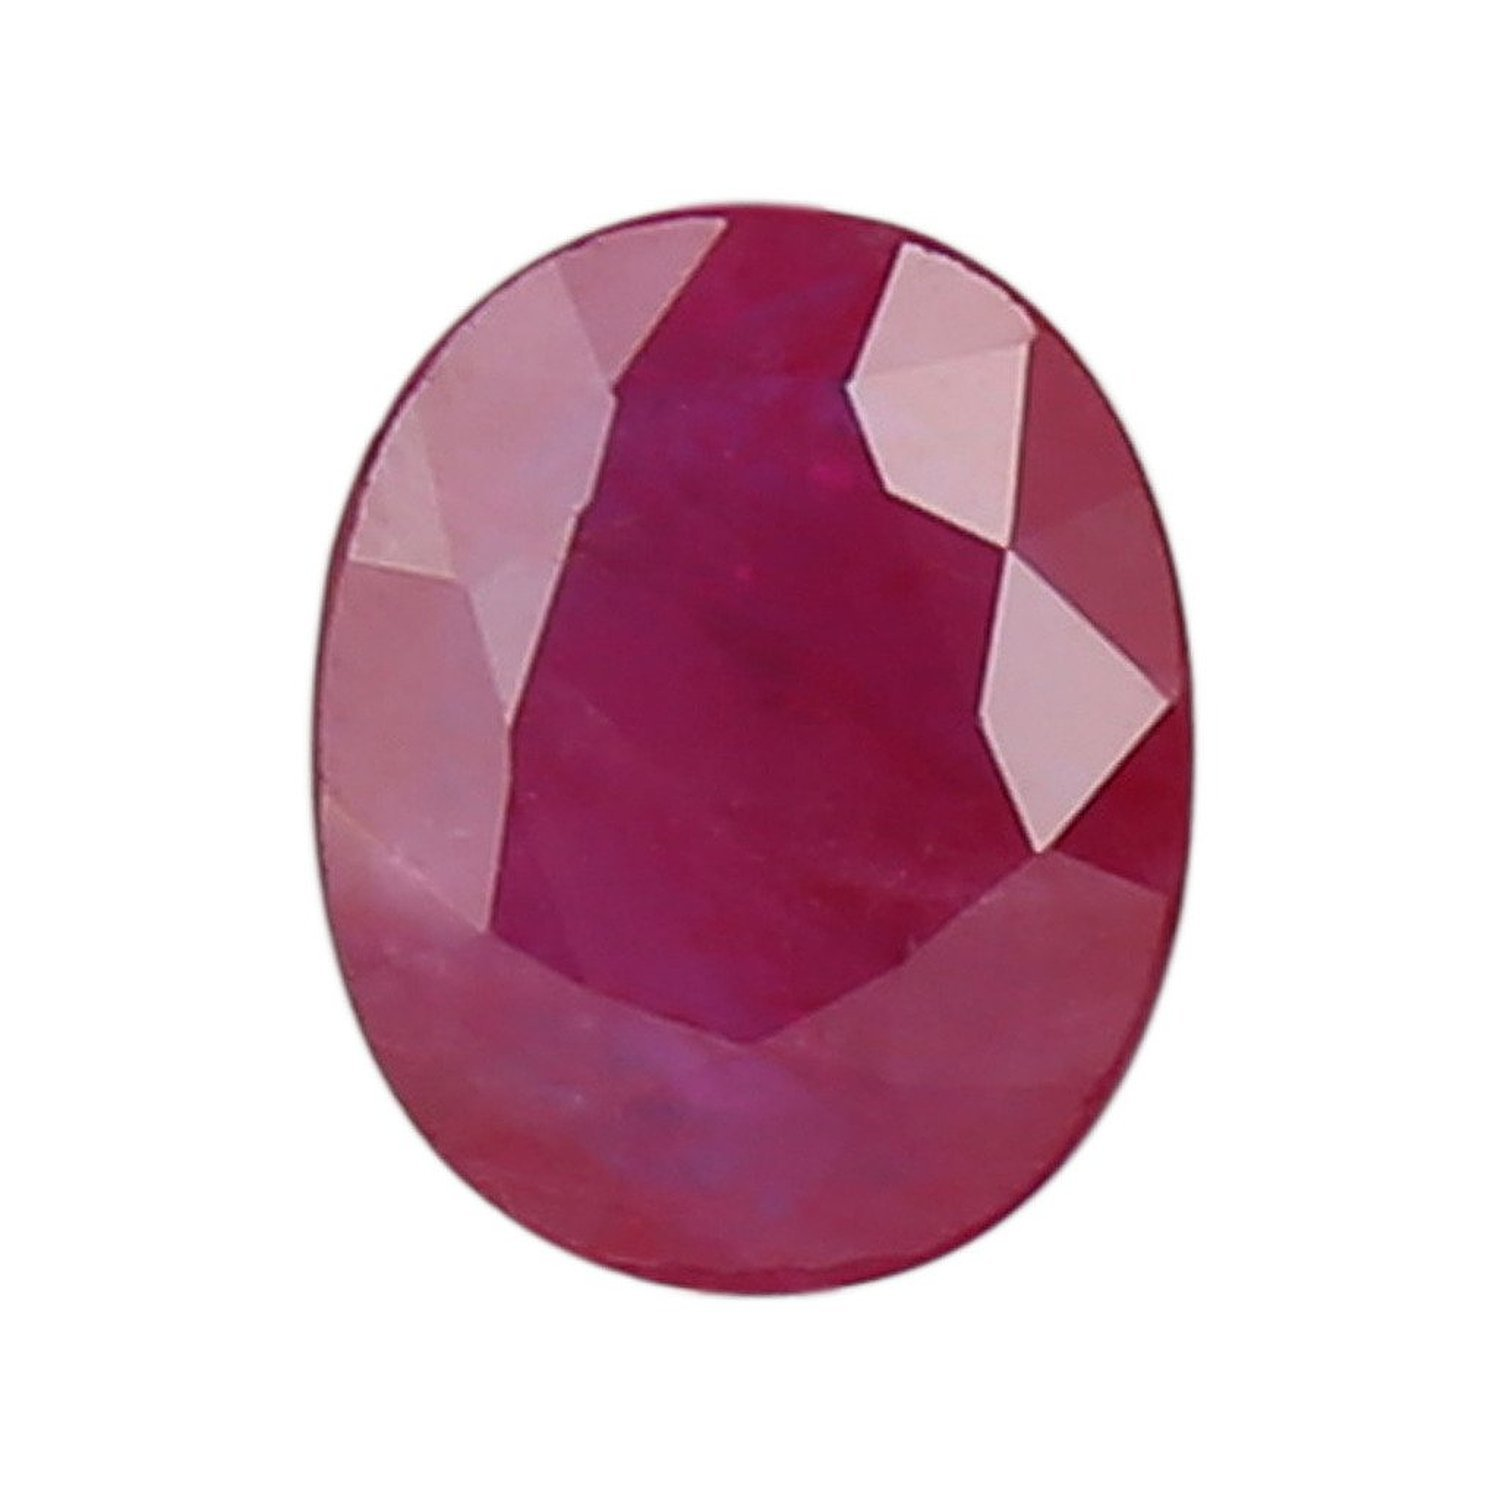 animation red ruby wedding stone gemstone gem hd video spinning backg stock